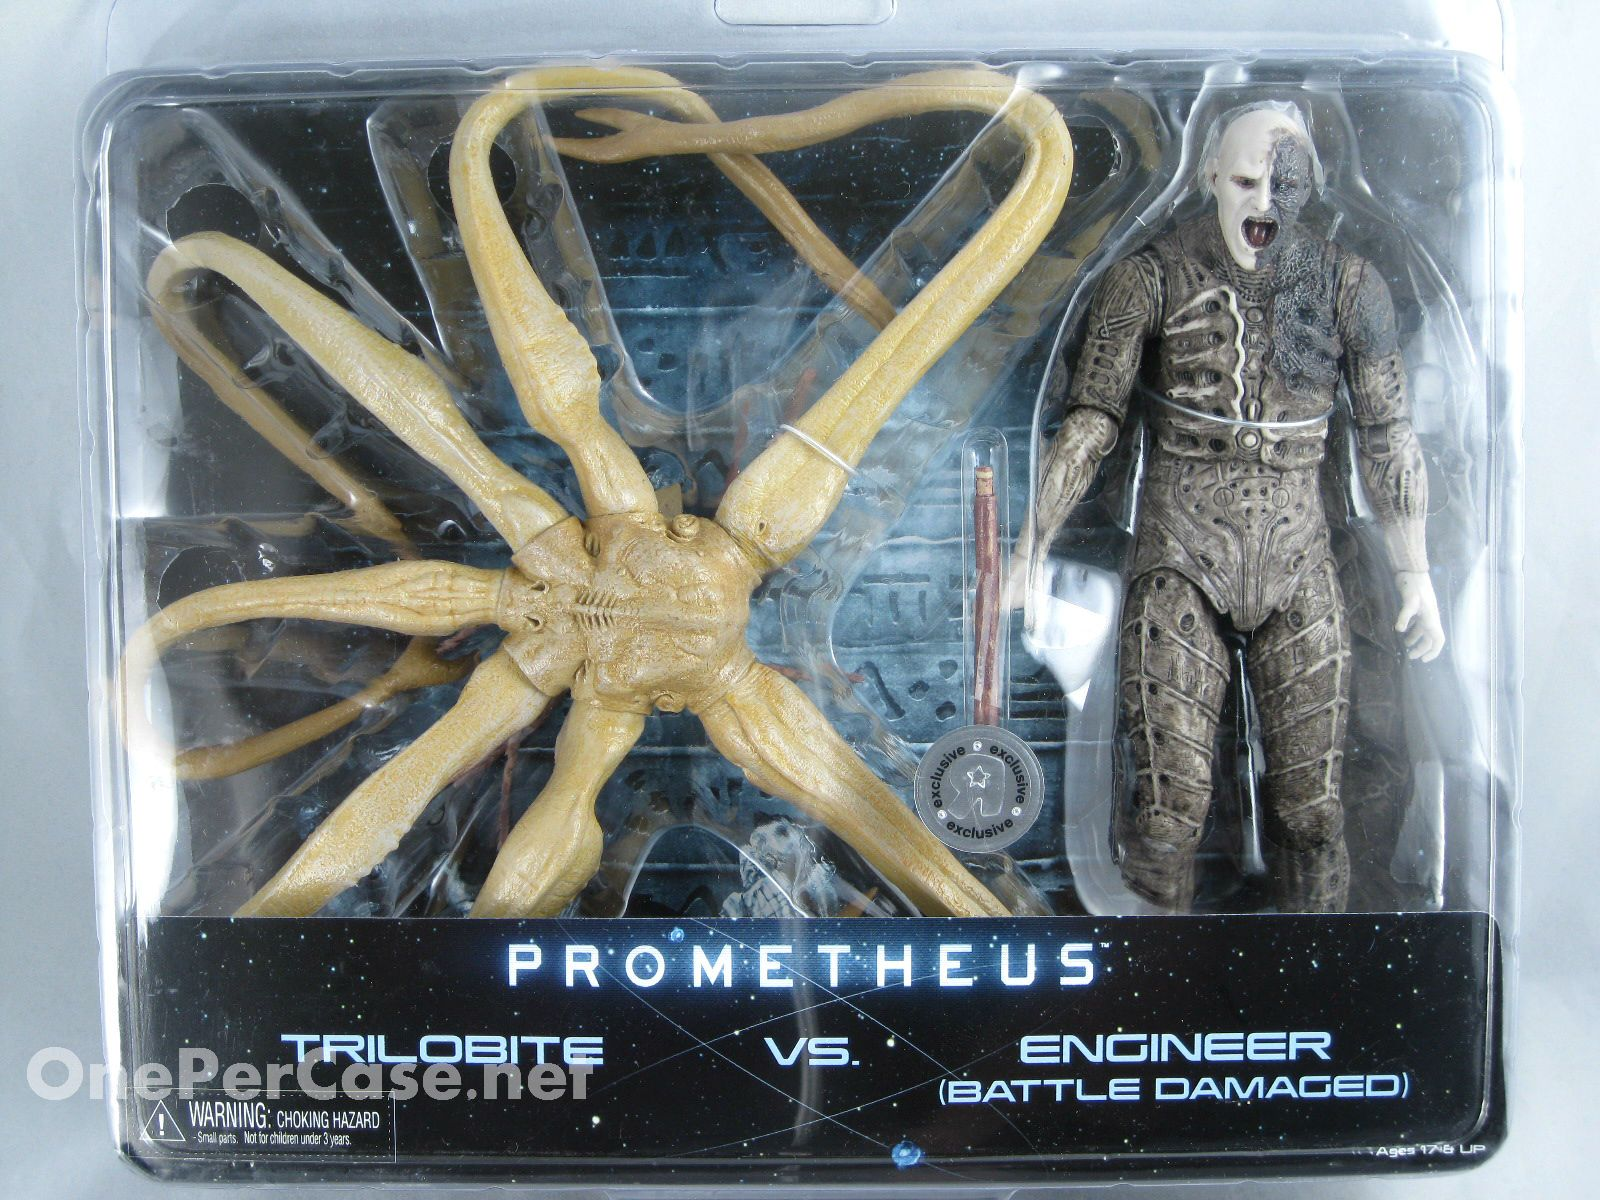 http://4.bp.blogspot.com/-zA-yC7sa7vc/UNT-hu2pfkI/AAAAAAAAHpo/cNGw-4_VqzY/s1600/NECA+Prometheus+Engineer+Vs+Trilobite+Battle+Damaged+2+Pack+Toys+R+Us+Exclusive+Action+Figure+One+Per+Case+(24).JPG